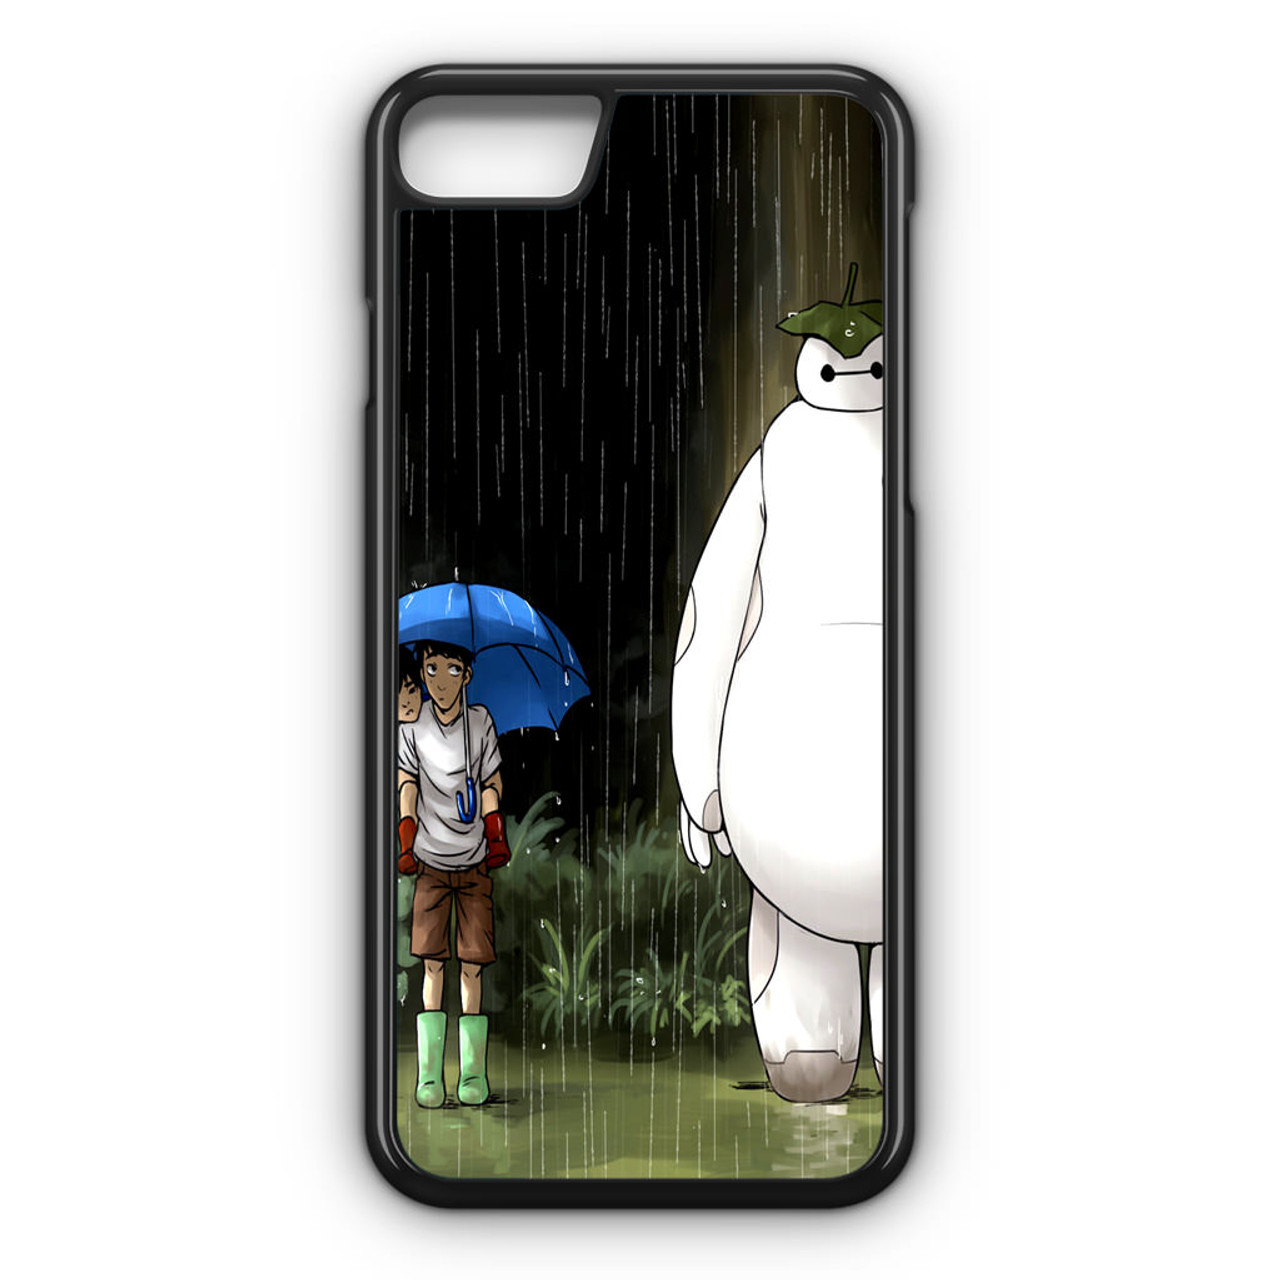 iphone 8 case baymax